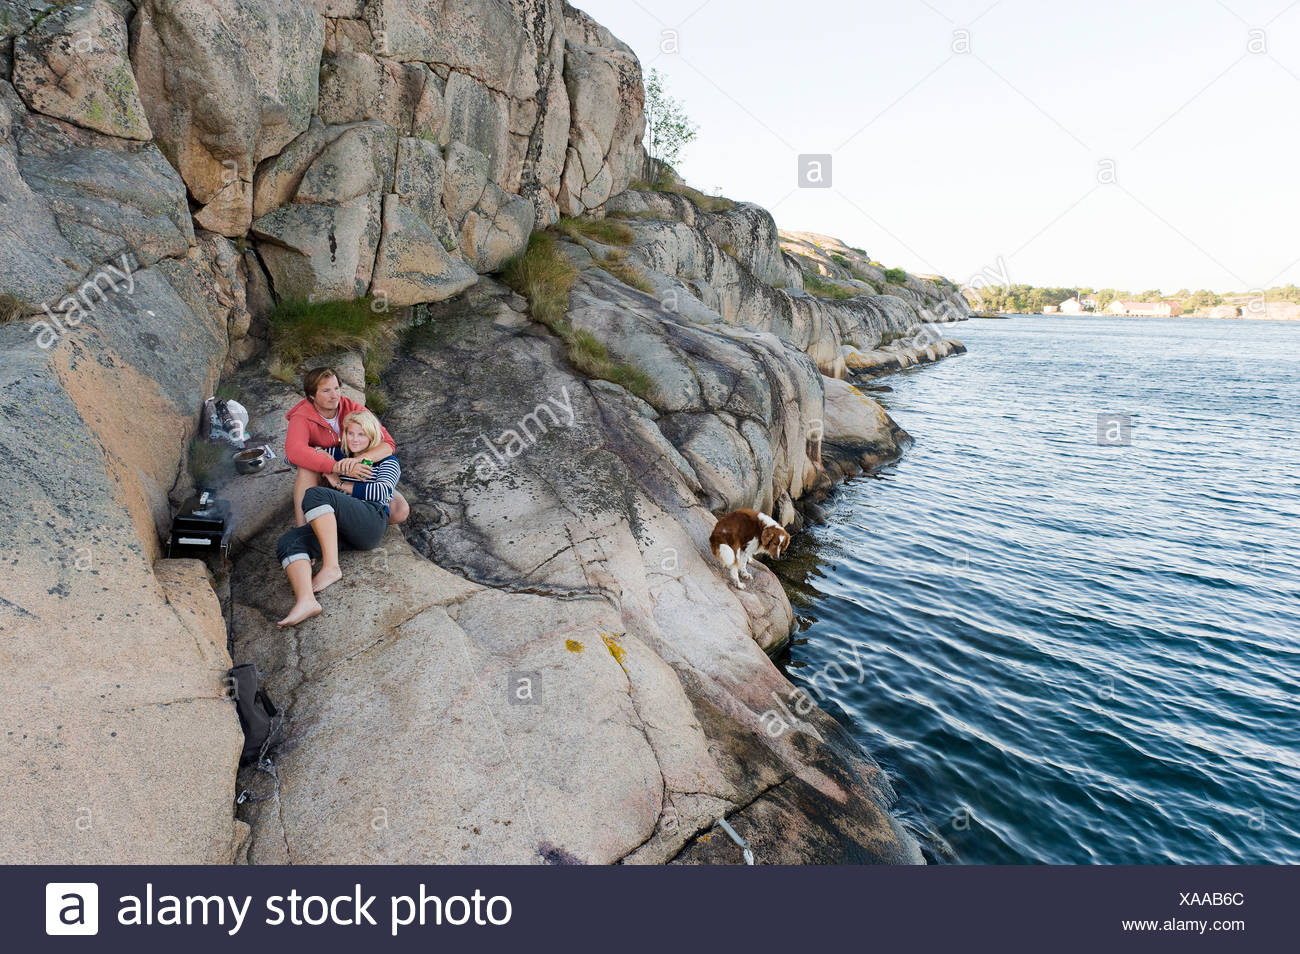 Détendue et romantique teenage boy and girl sur le rocher par la mer pacifique Photo Stock